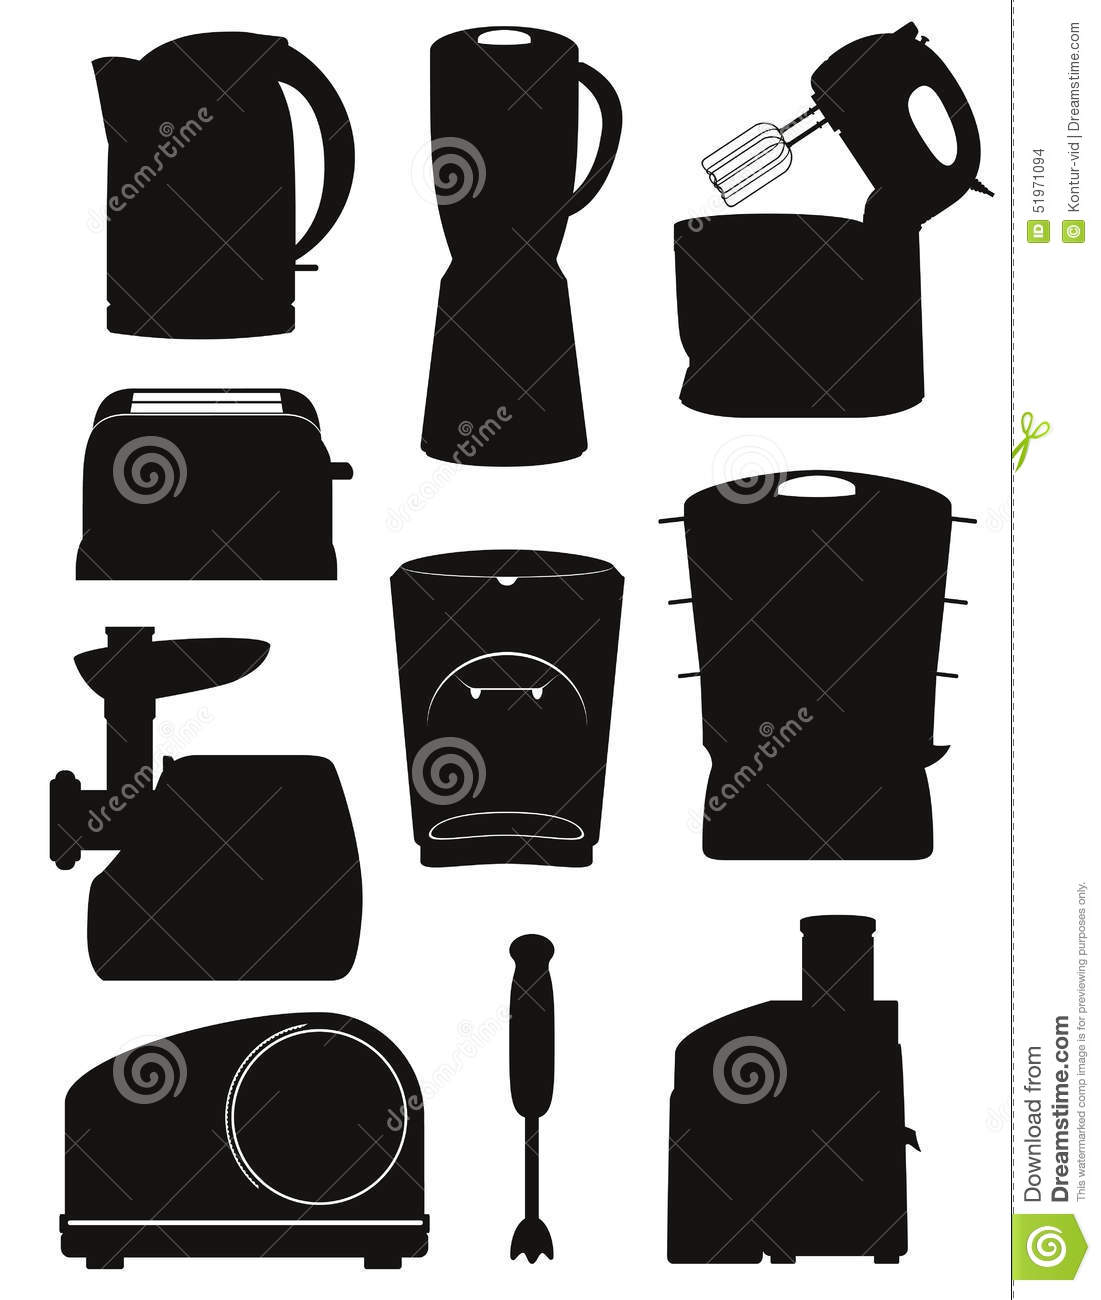 Uncategorized Appliances For The Kitchen set icons electrical appliances for the kitchen black silhouette stock vector